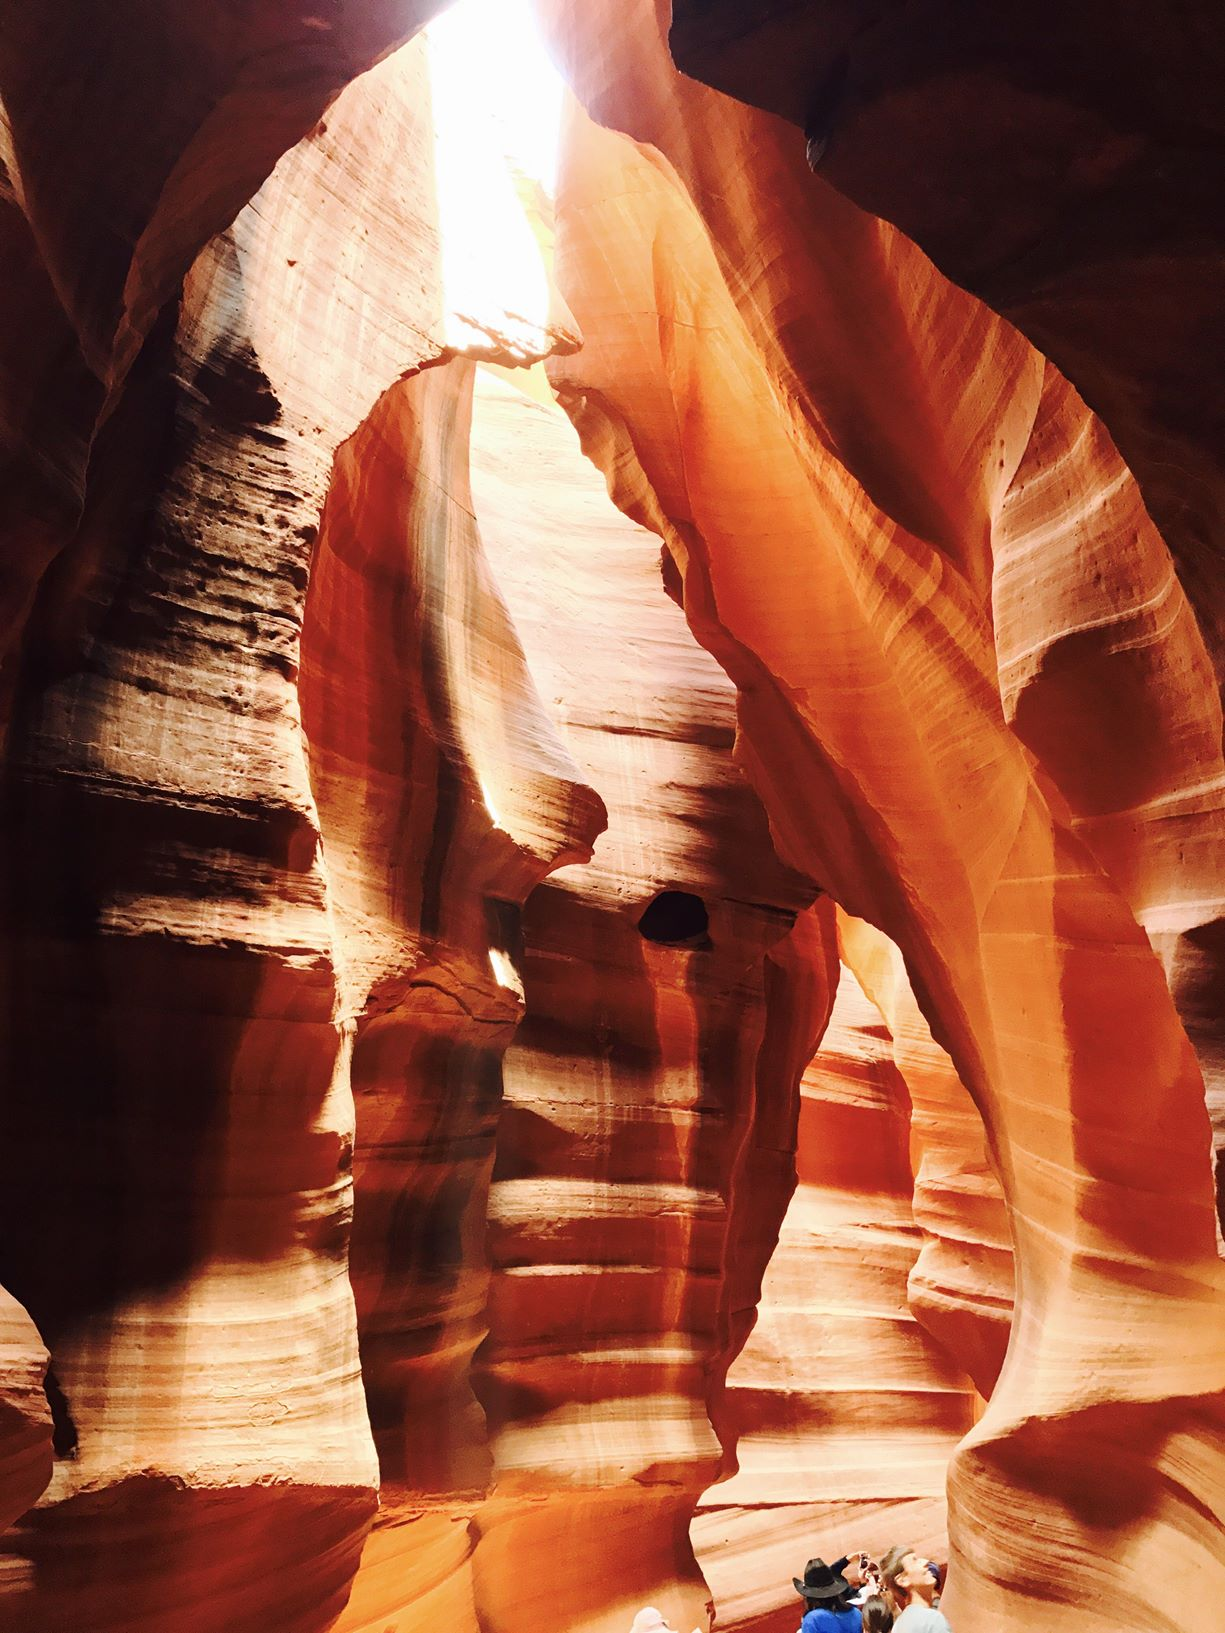 antelope-canyon-recipes-for-travel-14.jpg